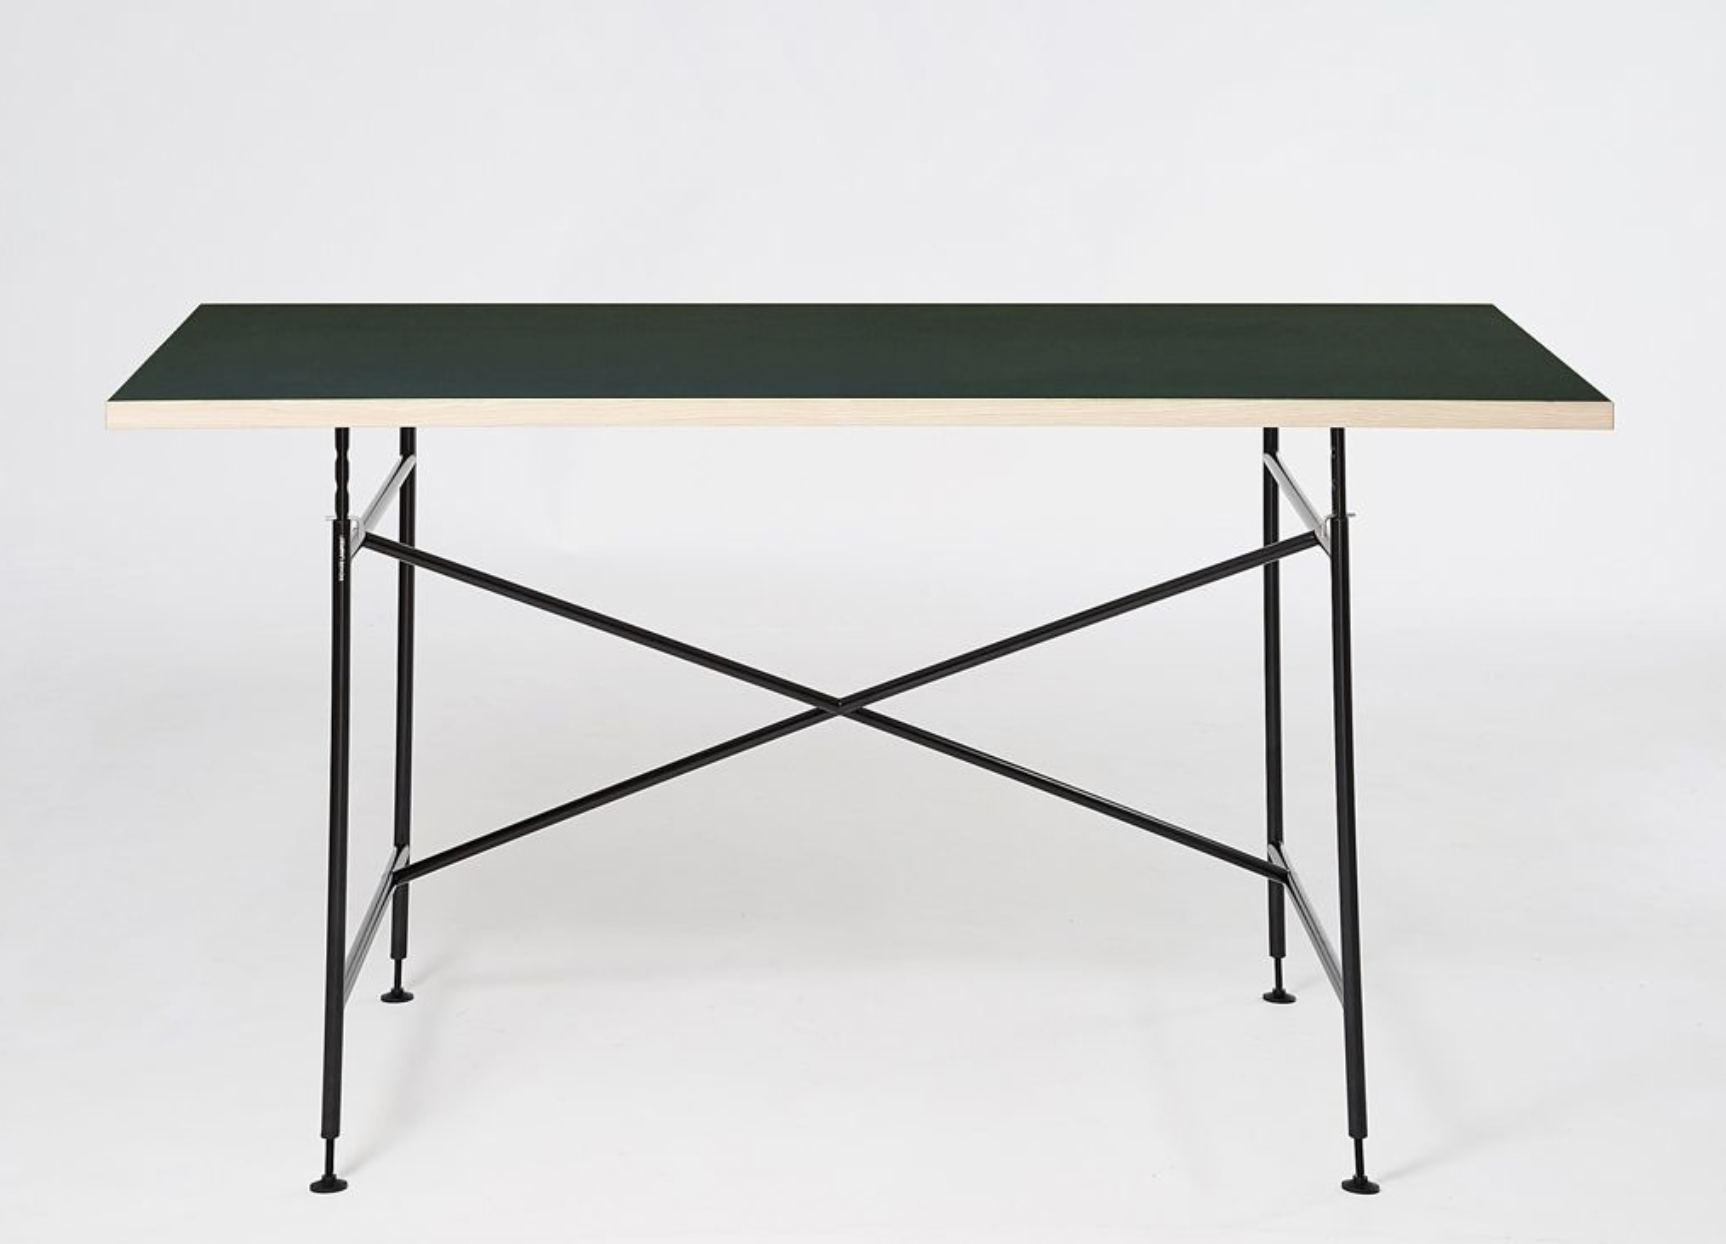 Eiermann desk grows with the child with its height adjustable frame